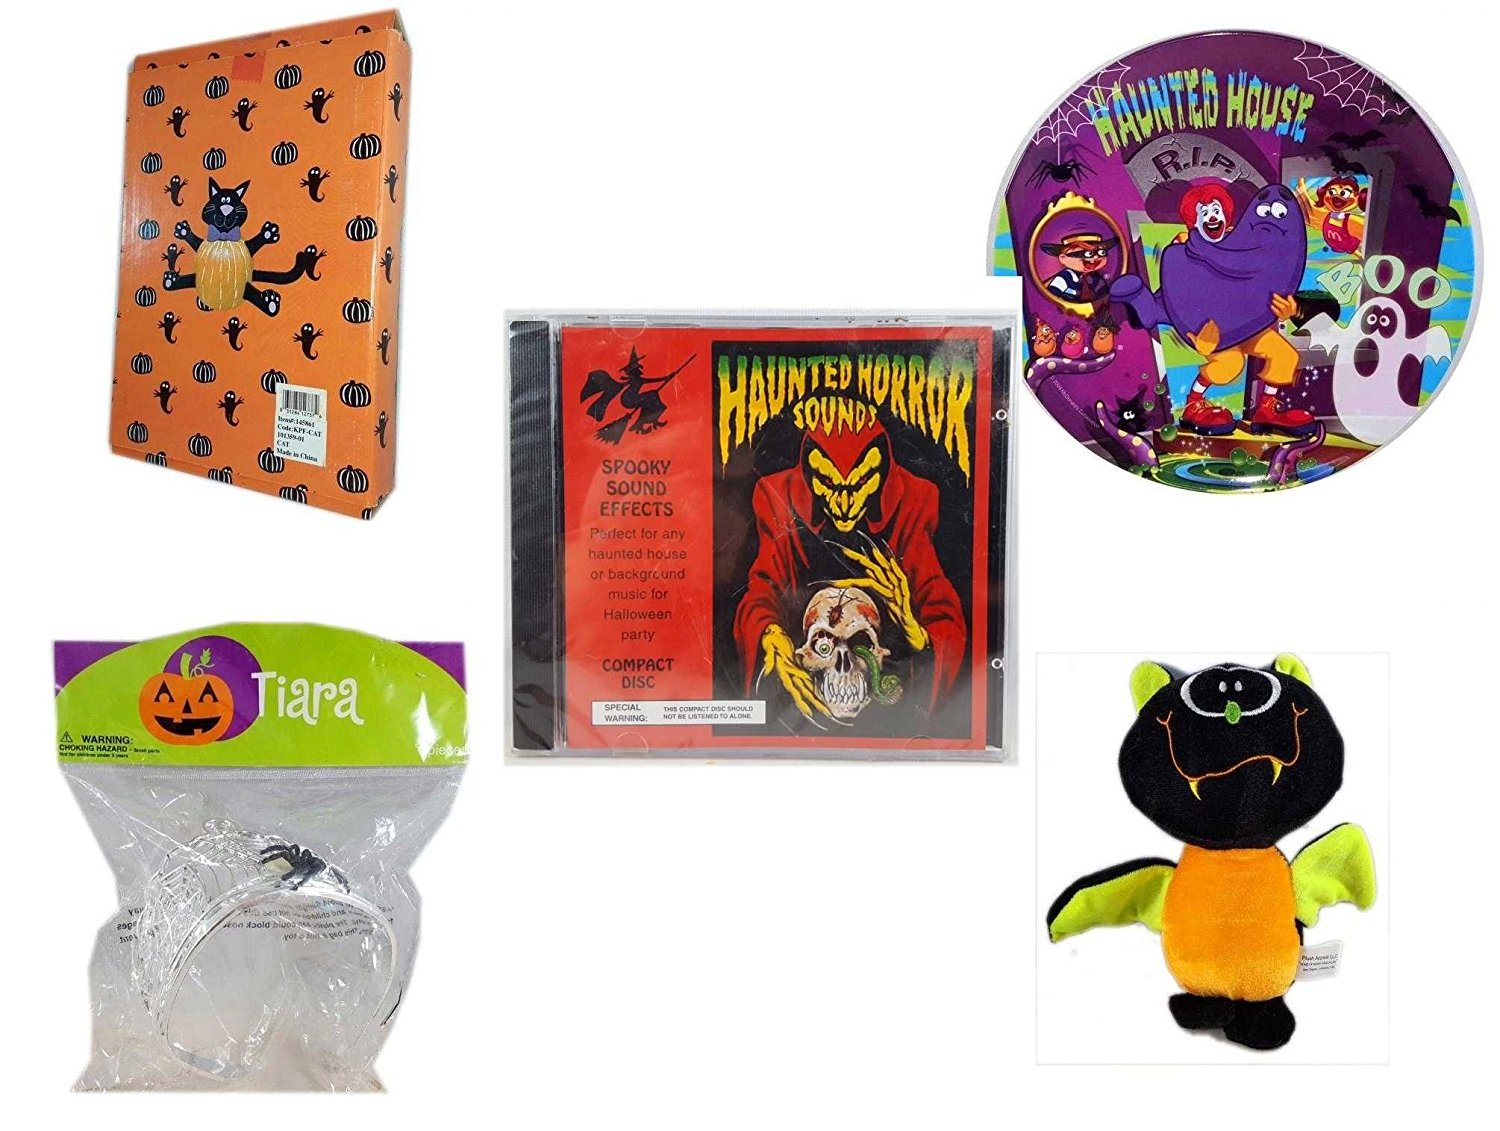 Halloween Fun Gift Bundle [5 piece] - Halloween Cat Pumpkin Push In 5 Piece Head Arms Legs - McDonald's Haunted House, RIP, Boo Halloween Plate - Haunted Horror Sounds CD - Halloween Spider Tiara -